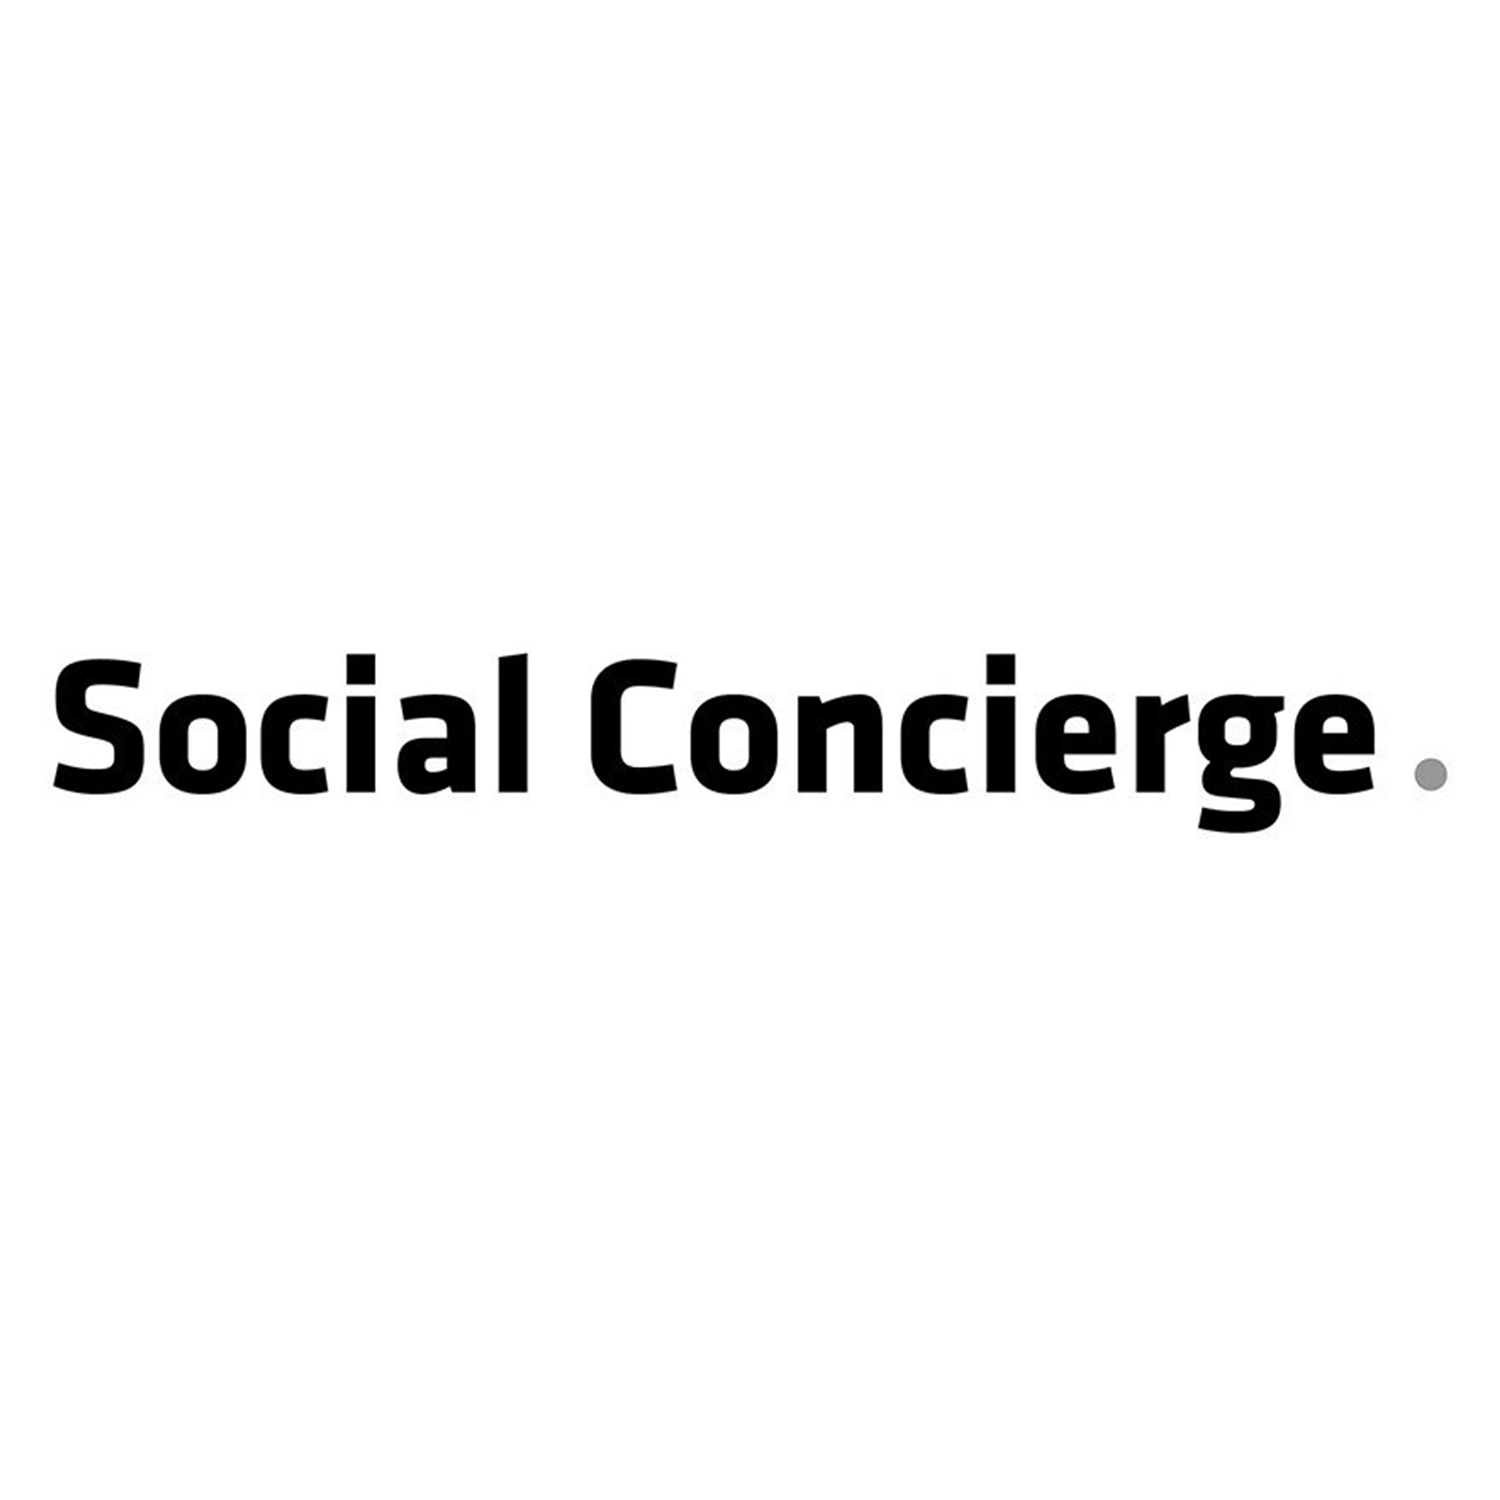 social-concierge-g&t-weekends.jpg